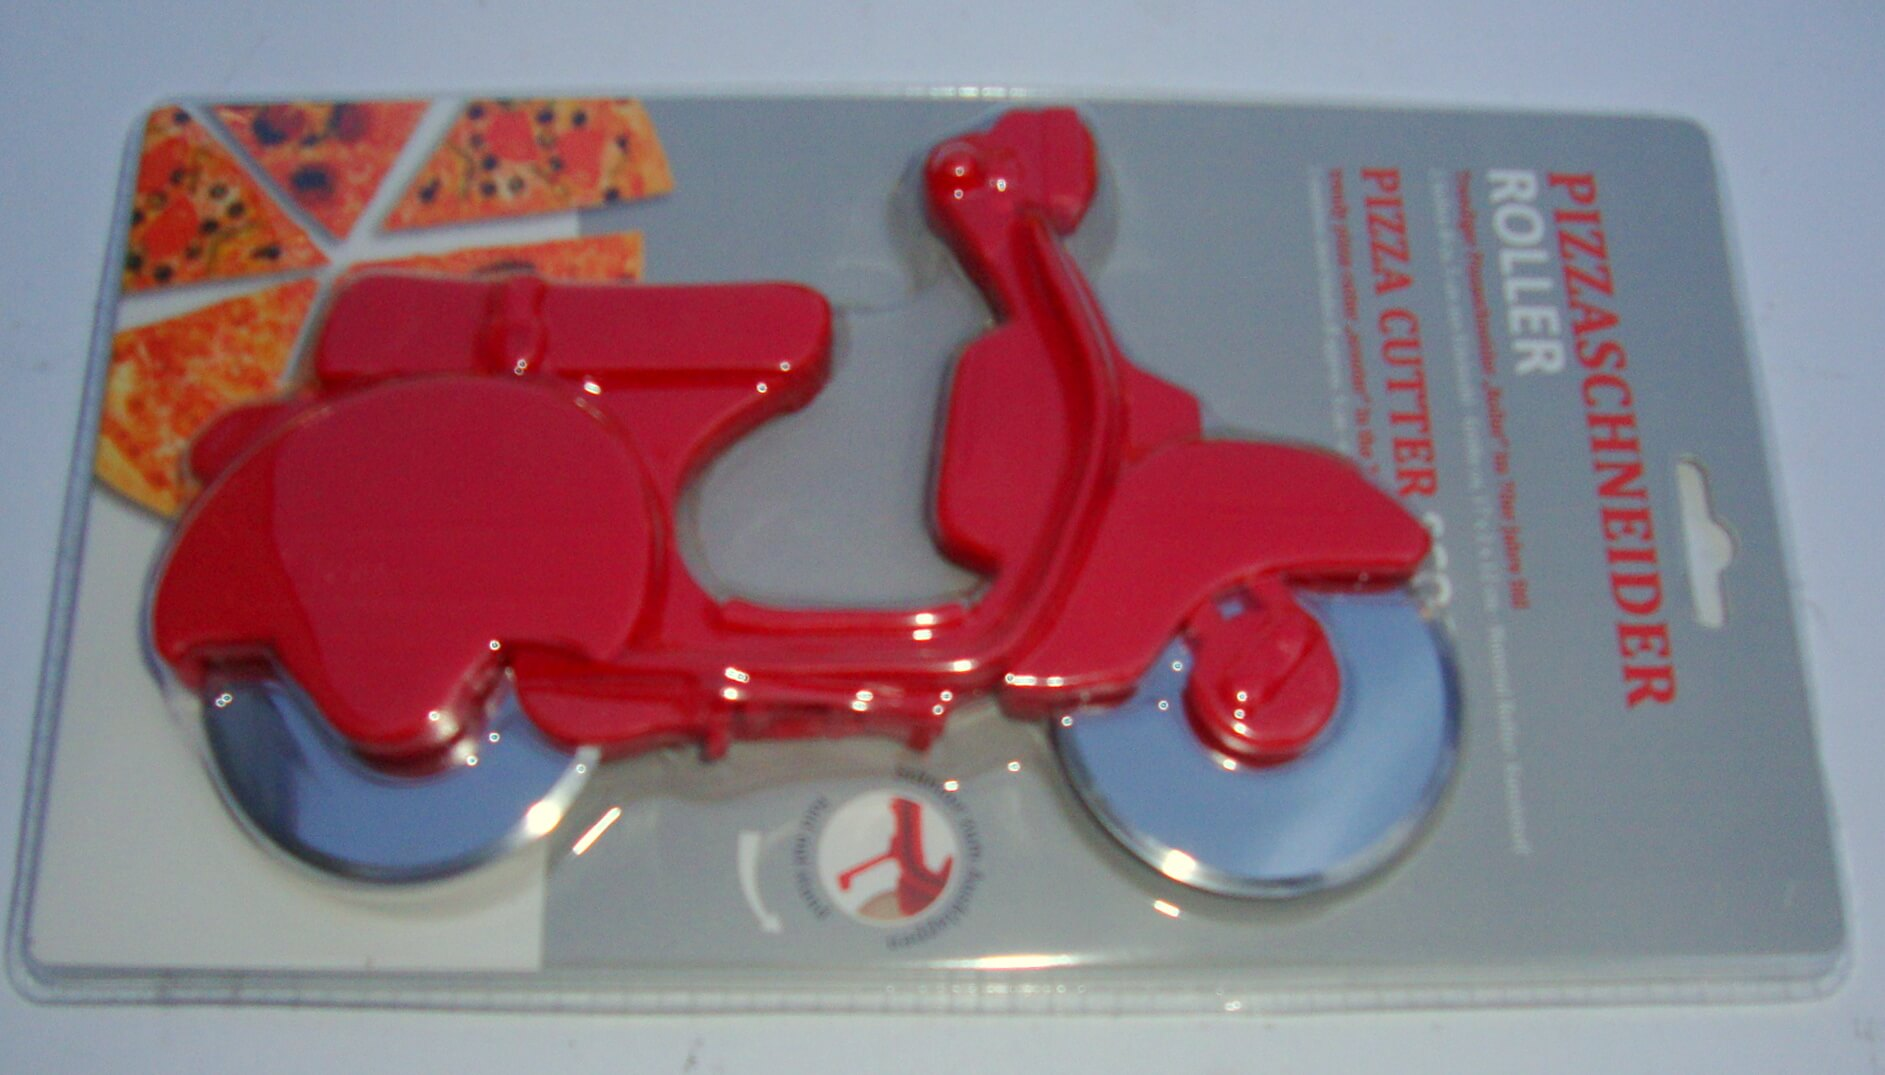 Pizza cutter scooter, red